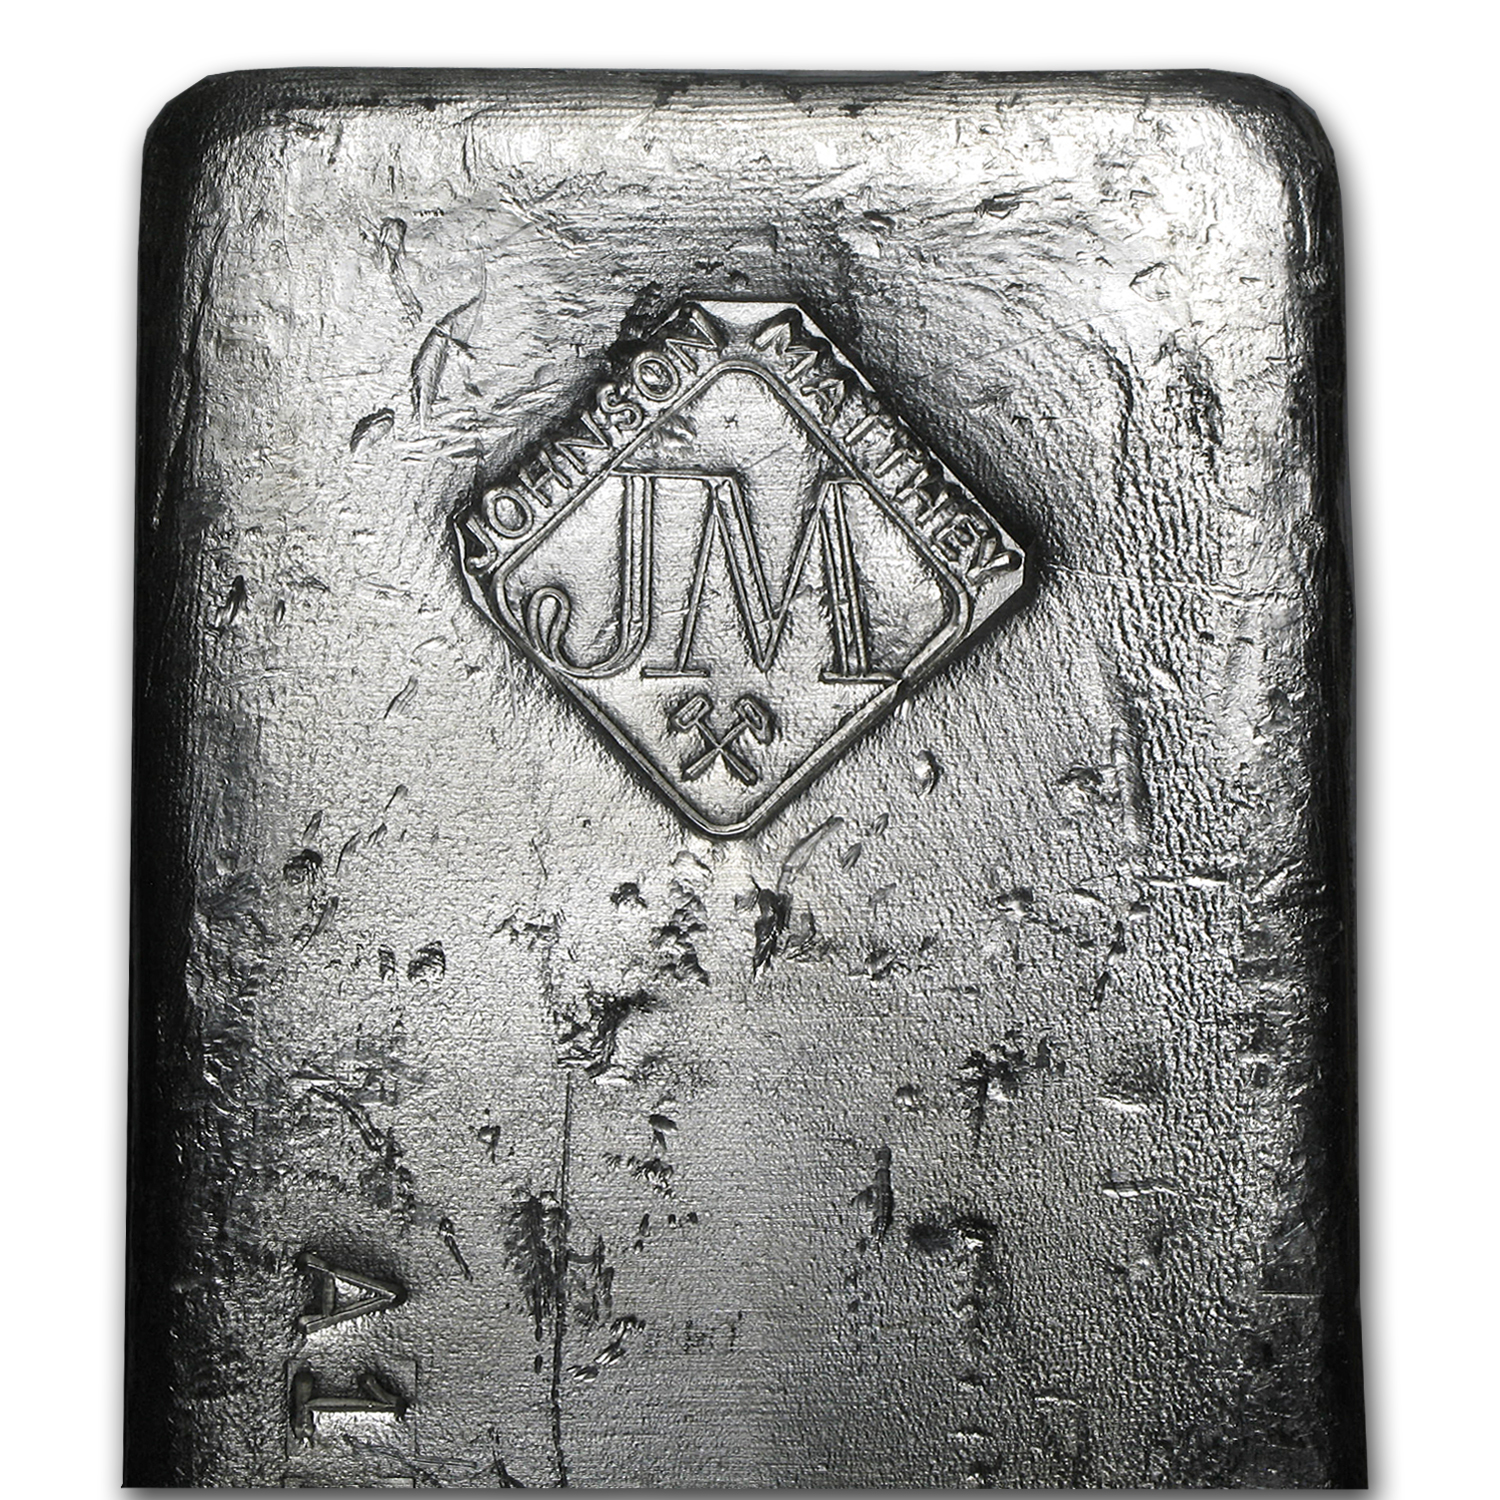 100 oz Silver Bar - Johnson Matthey (Serial #/Canada)